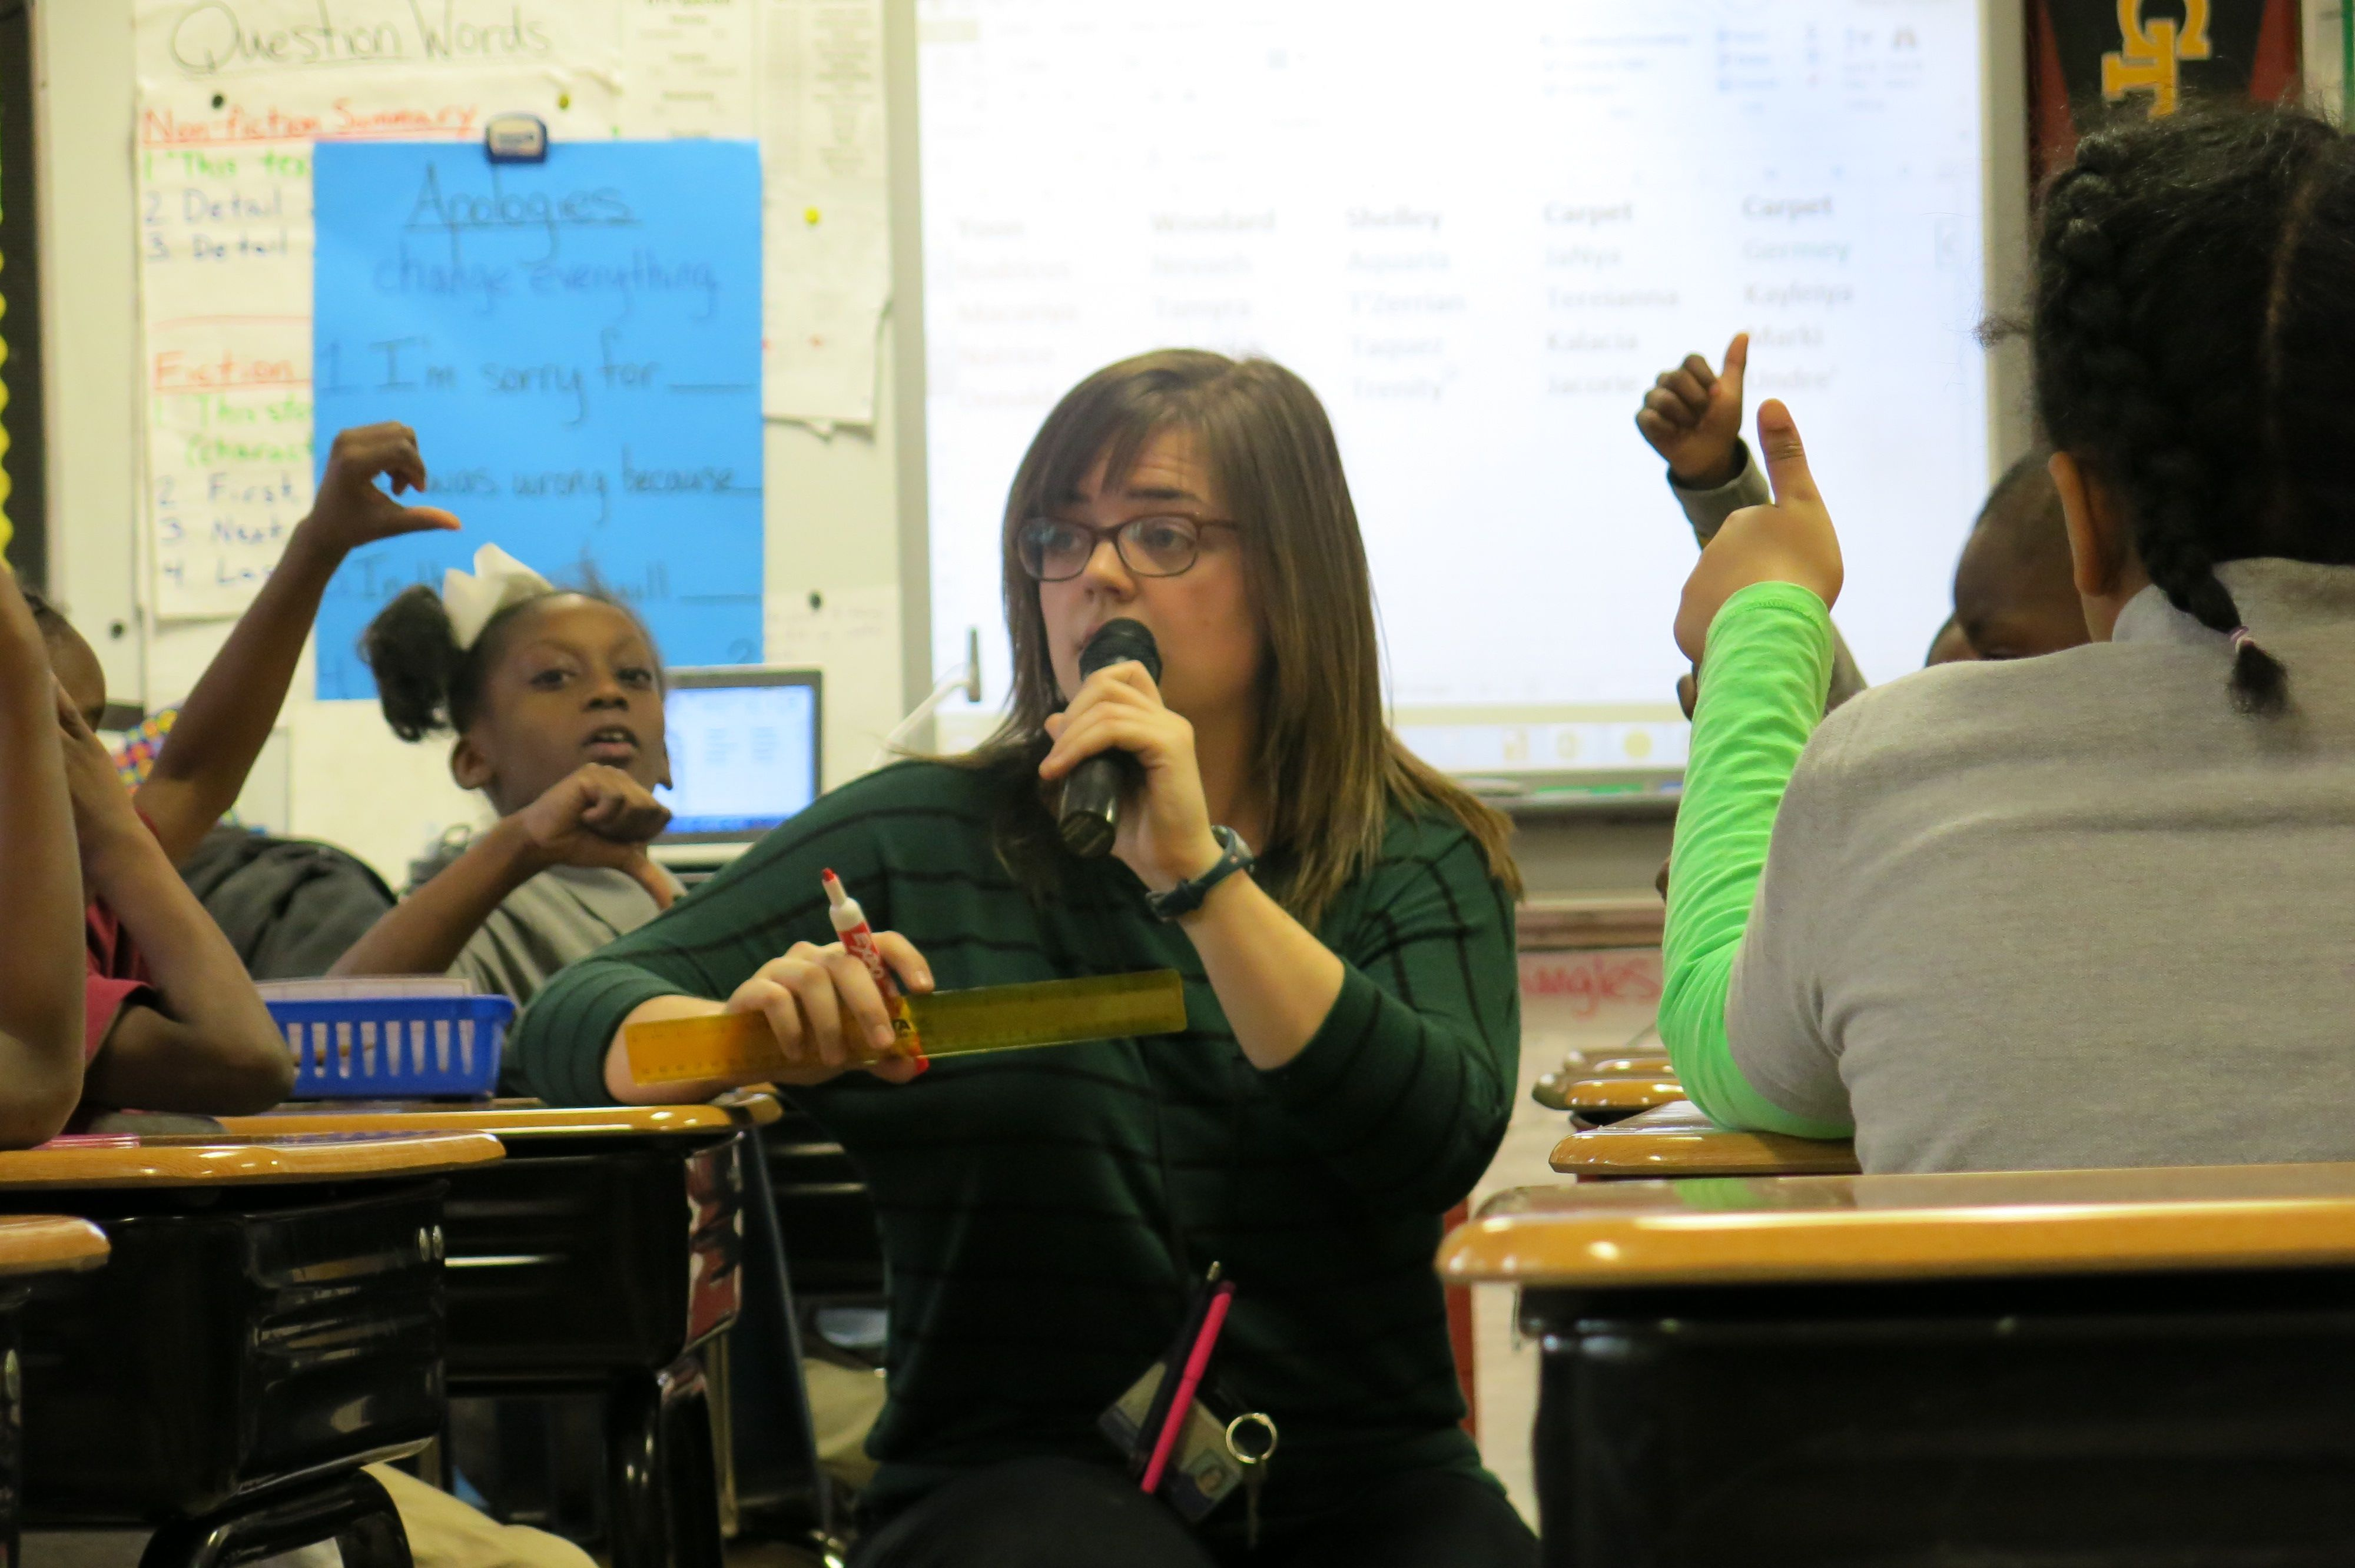 Second-grade teacher Katelyn Woodard uses a wireless microphone and amplifier to project her voice during class on Jan. 13, 2015, at Cornerstone Preparatory School in Memphis.